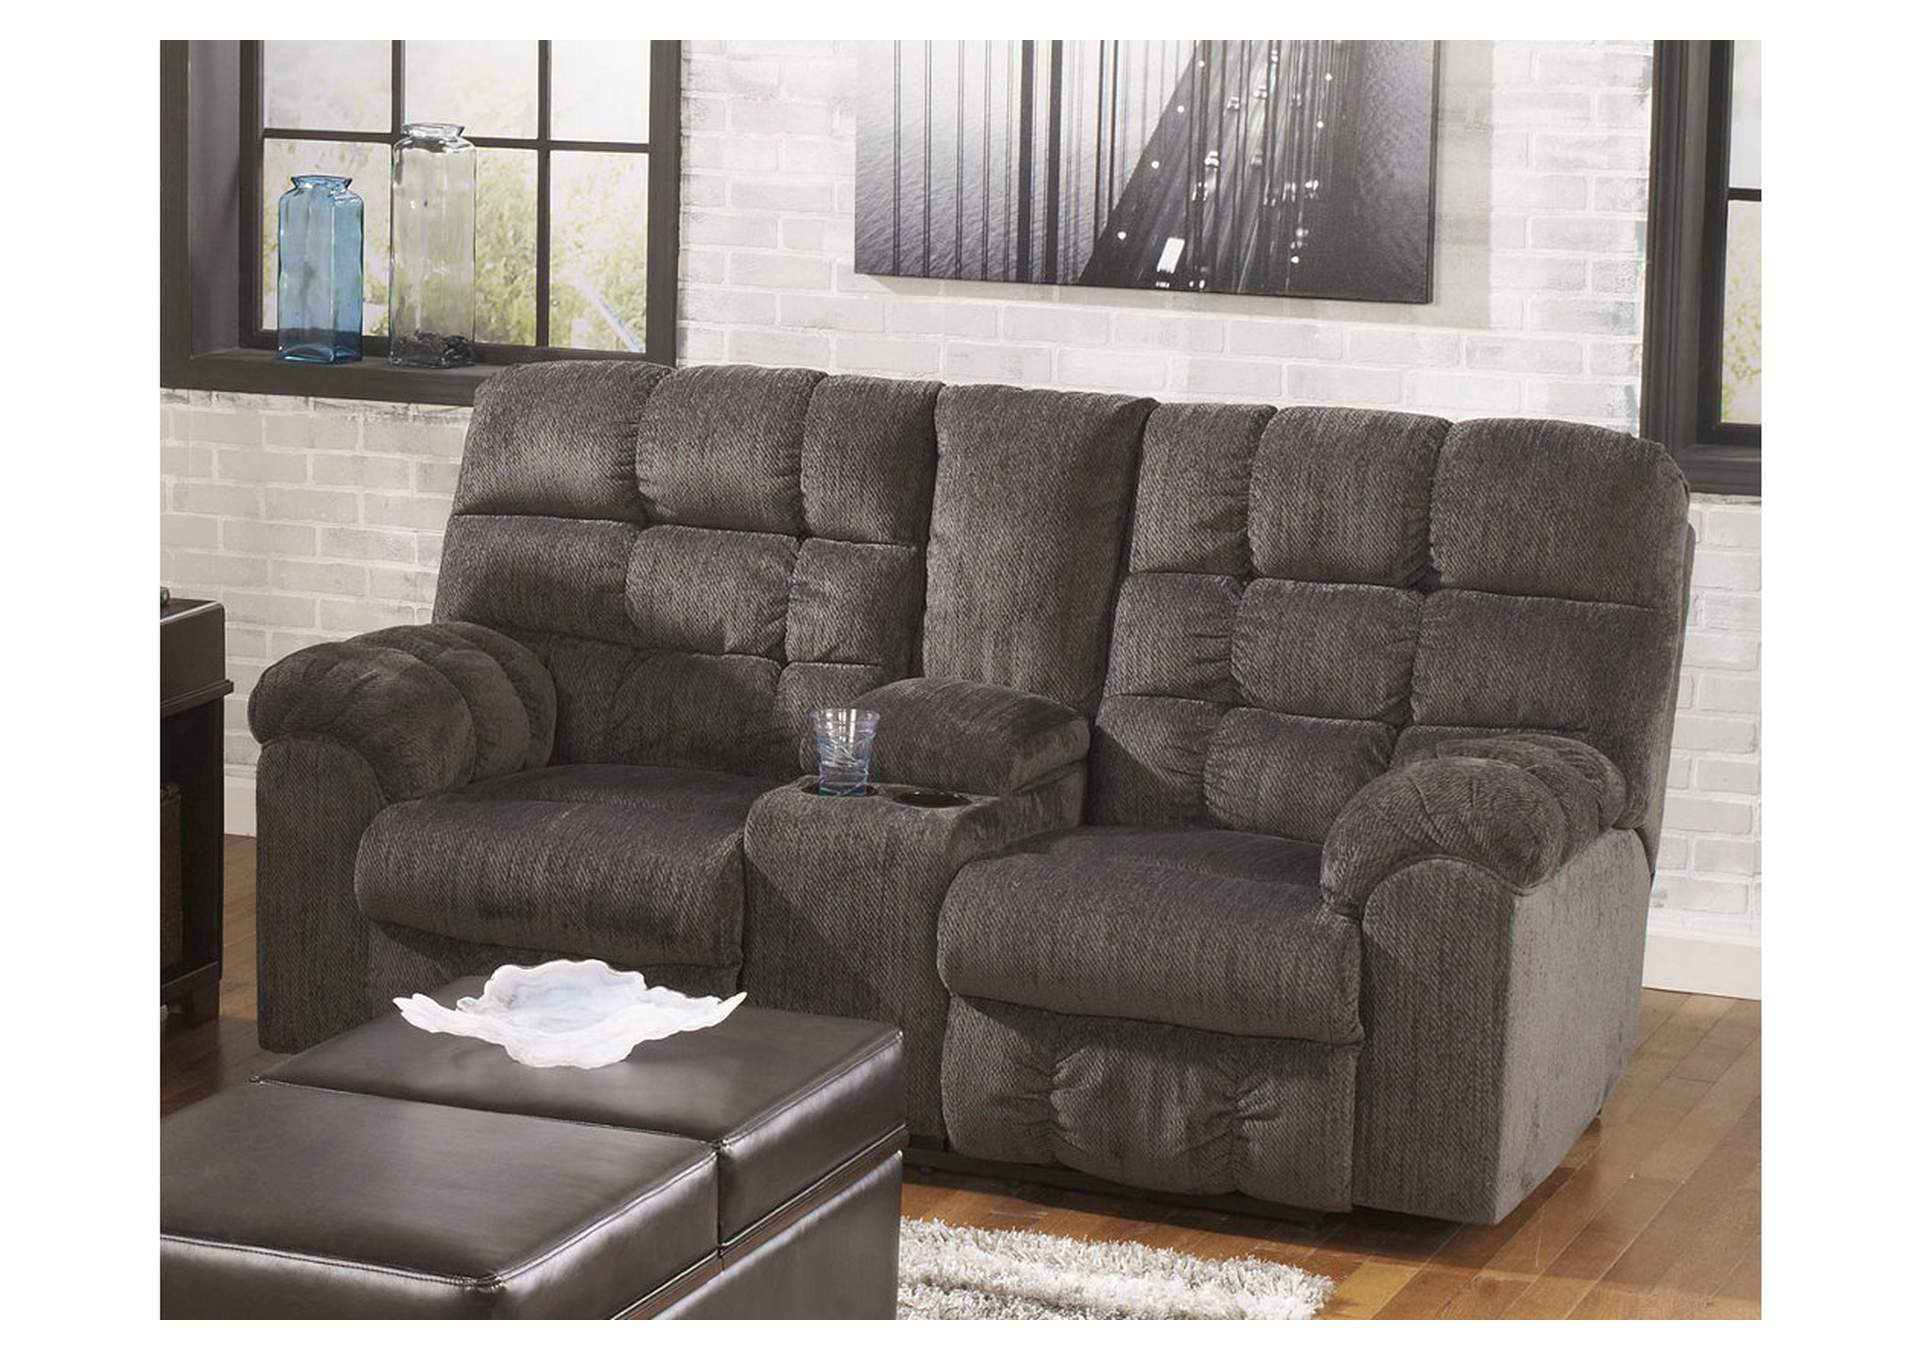 Acieona Slate Double Reclining Loveseat w/ Console,Signature Design By Ashley